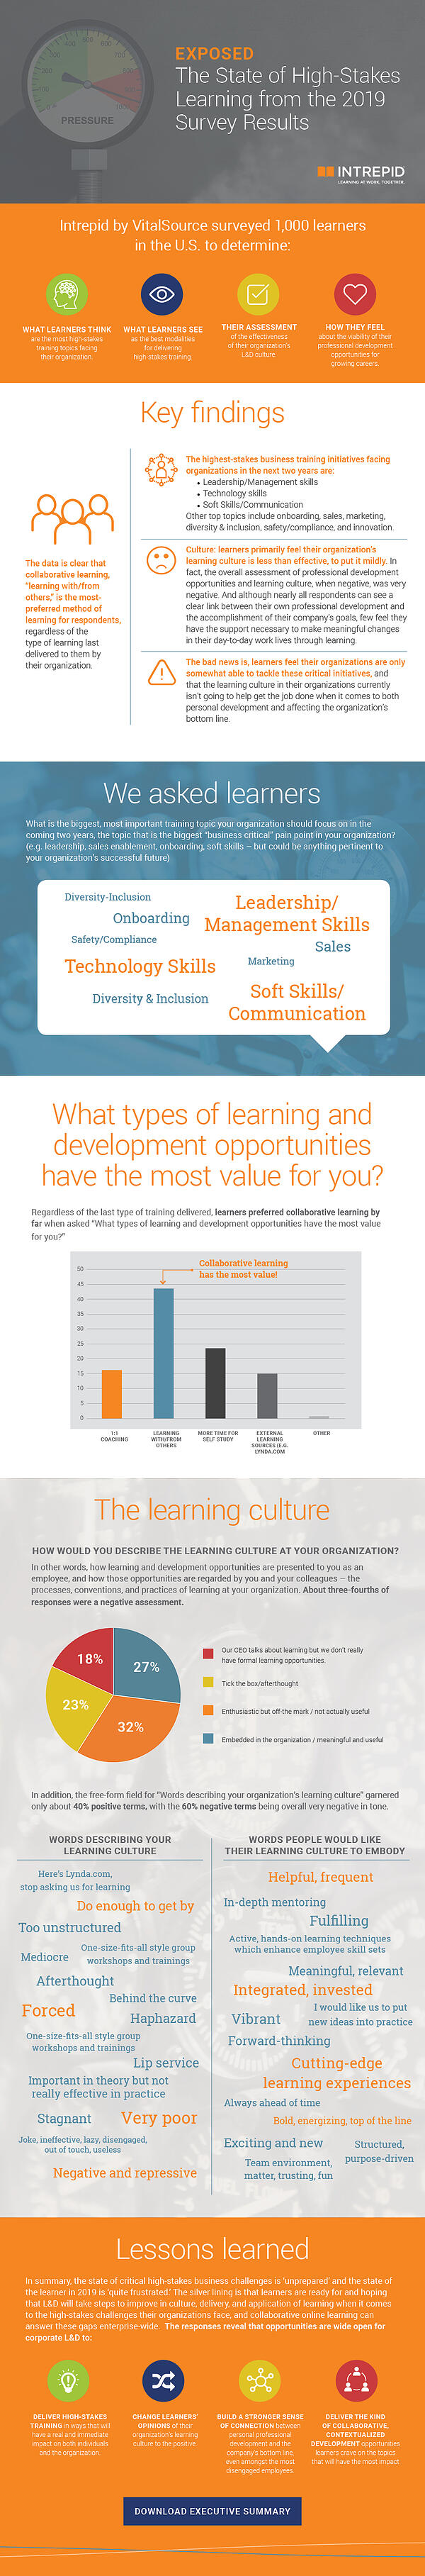 LearningSurveyResults_Infographic_final